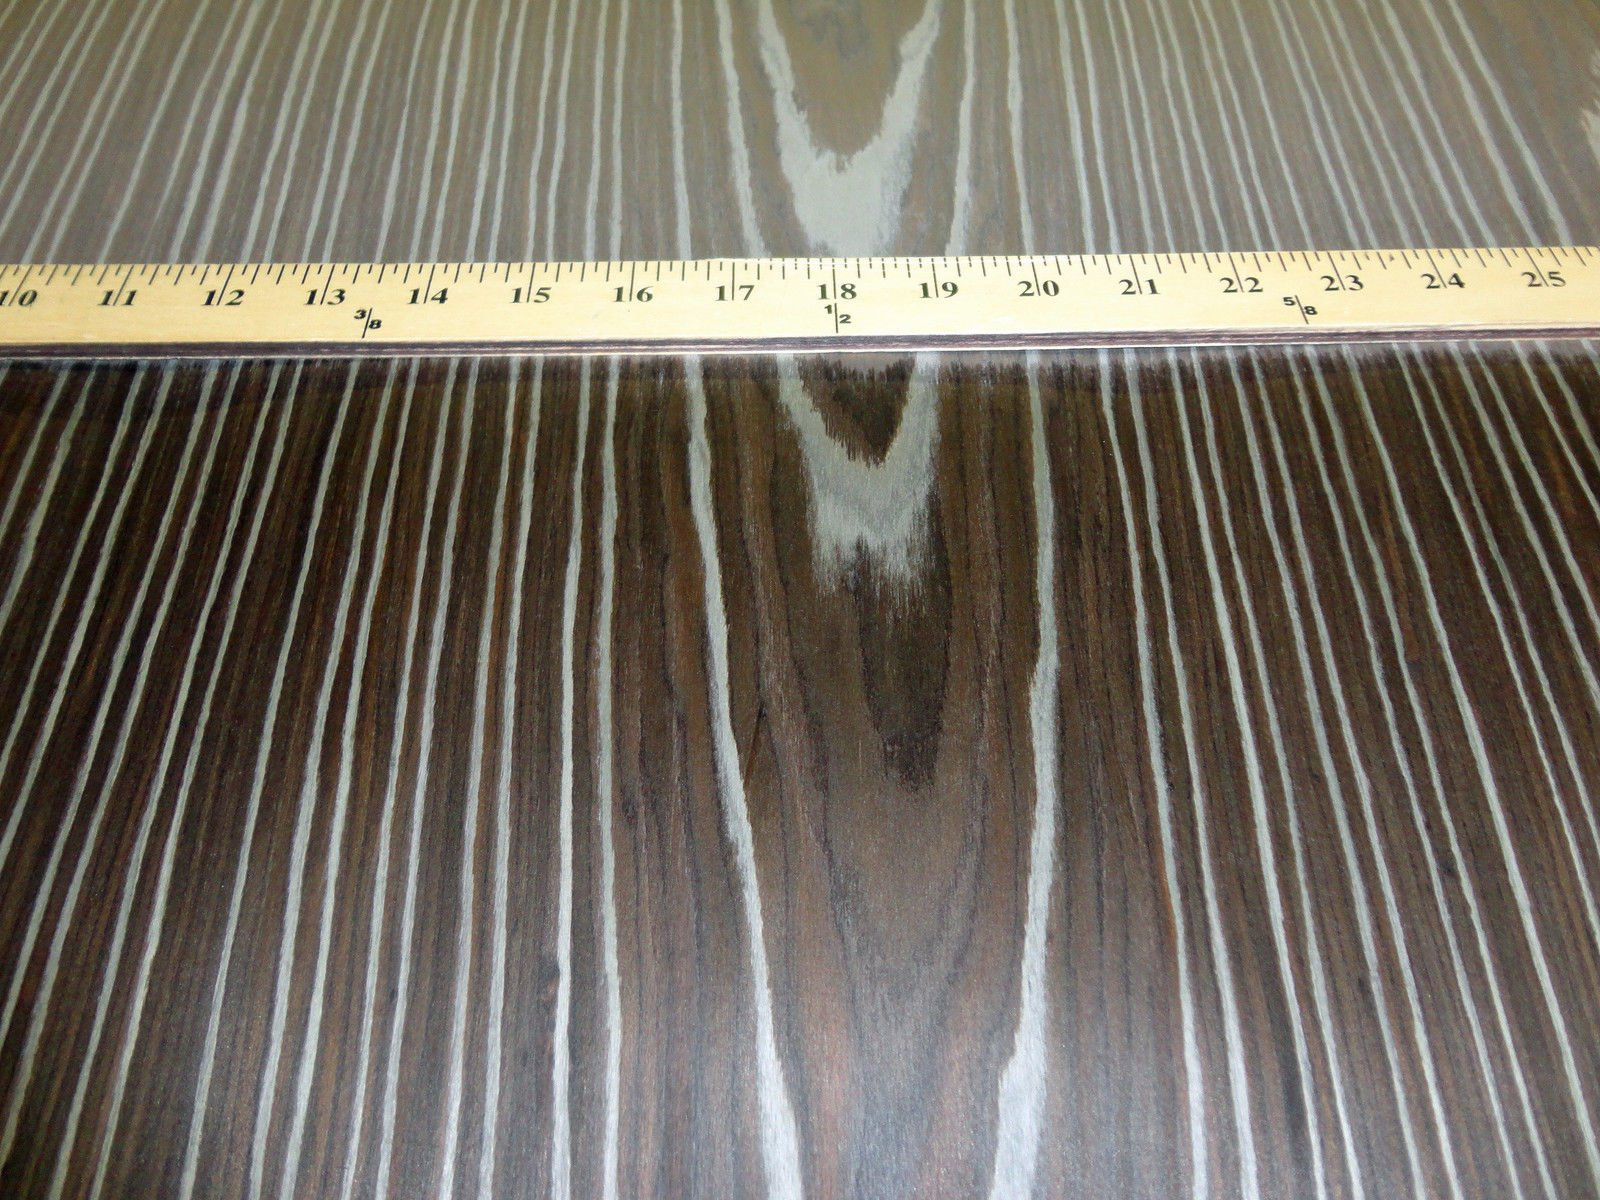 Spalted Walnut composite wood veneer 24'' x 96'' with wood backer 1/25'' thickness